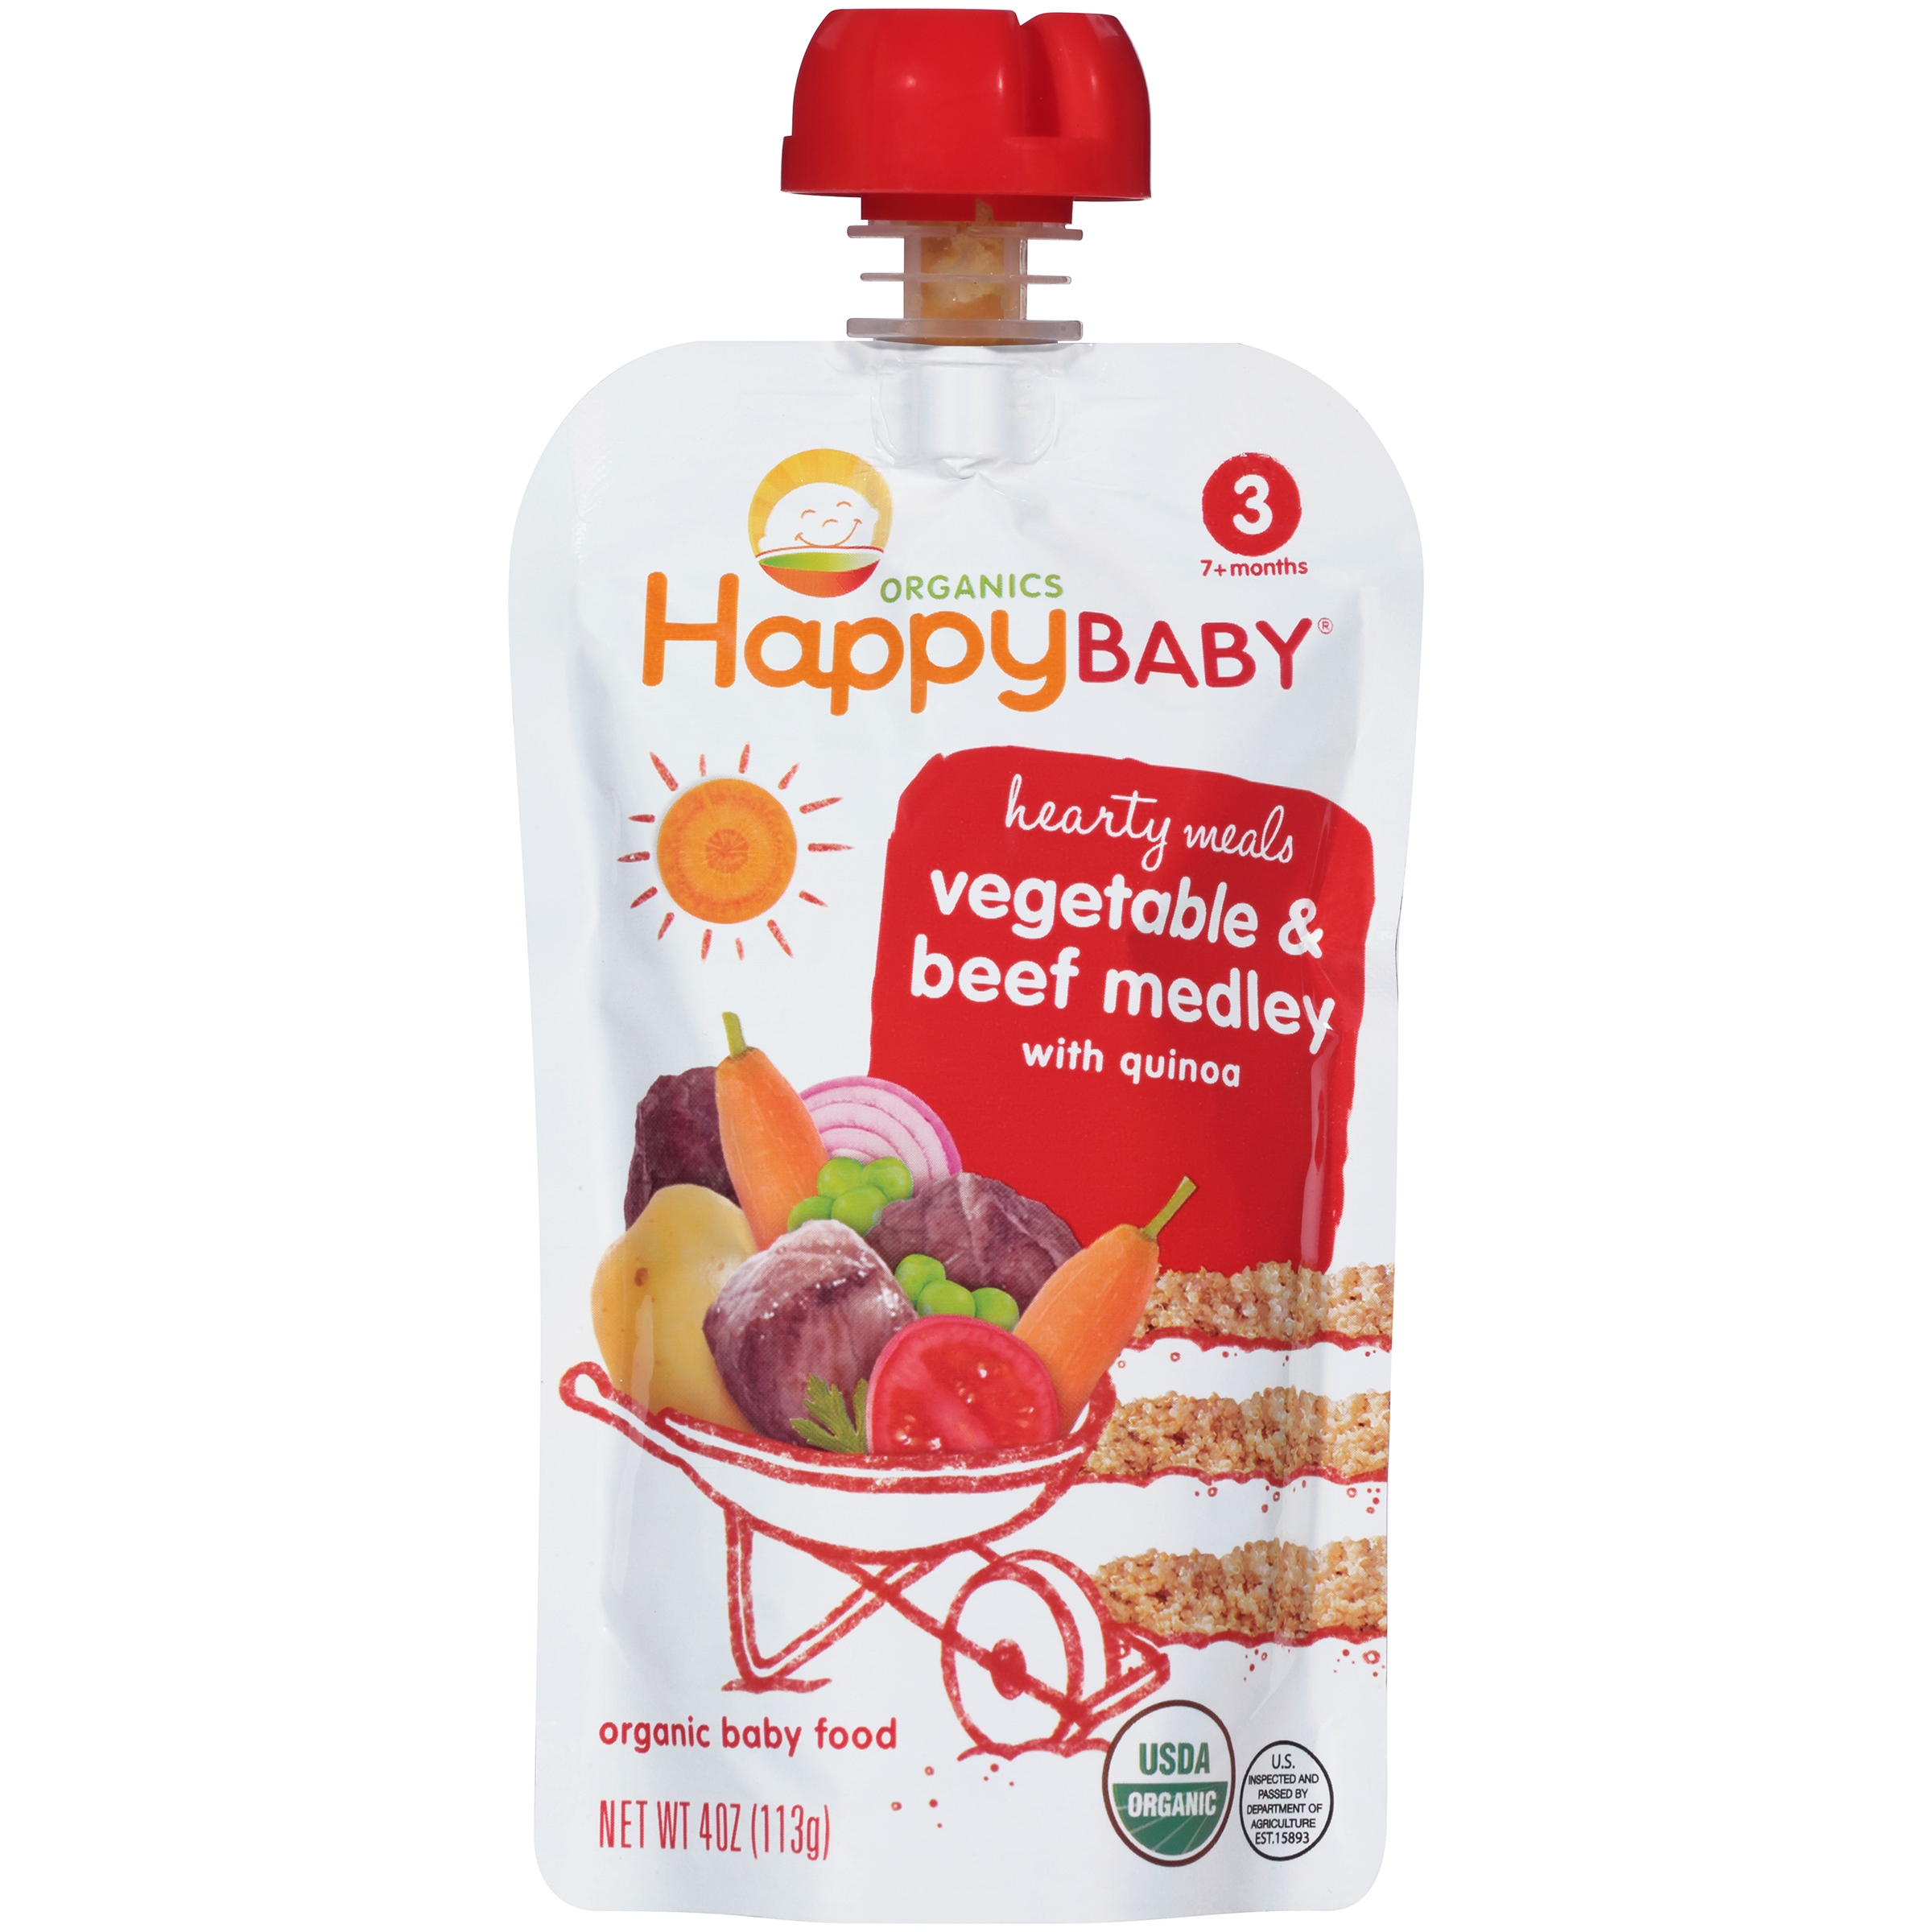 Happy Baby Hearty Meals Vegetable & Beef Medley with Quinoa Organic Baby Food 4 oz. Pouch